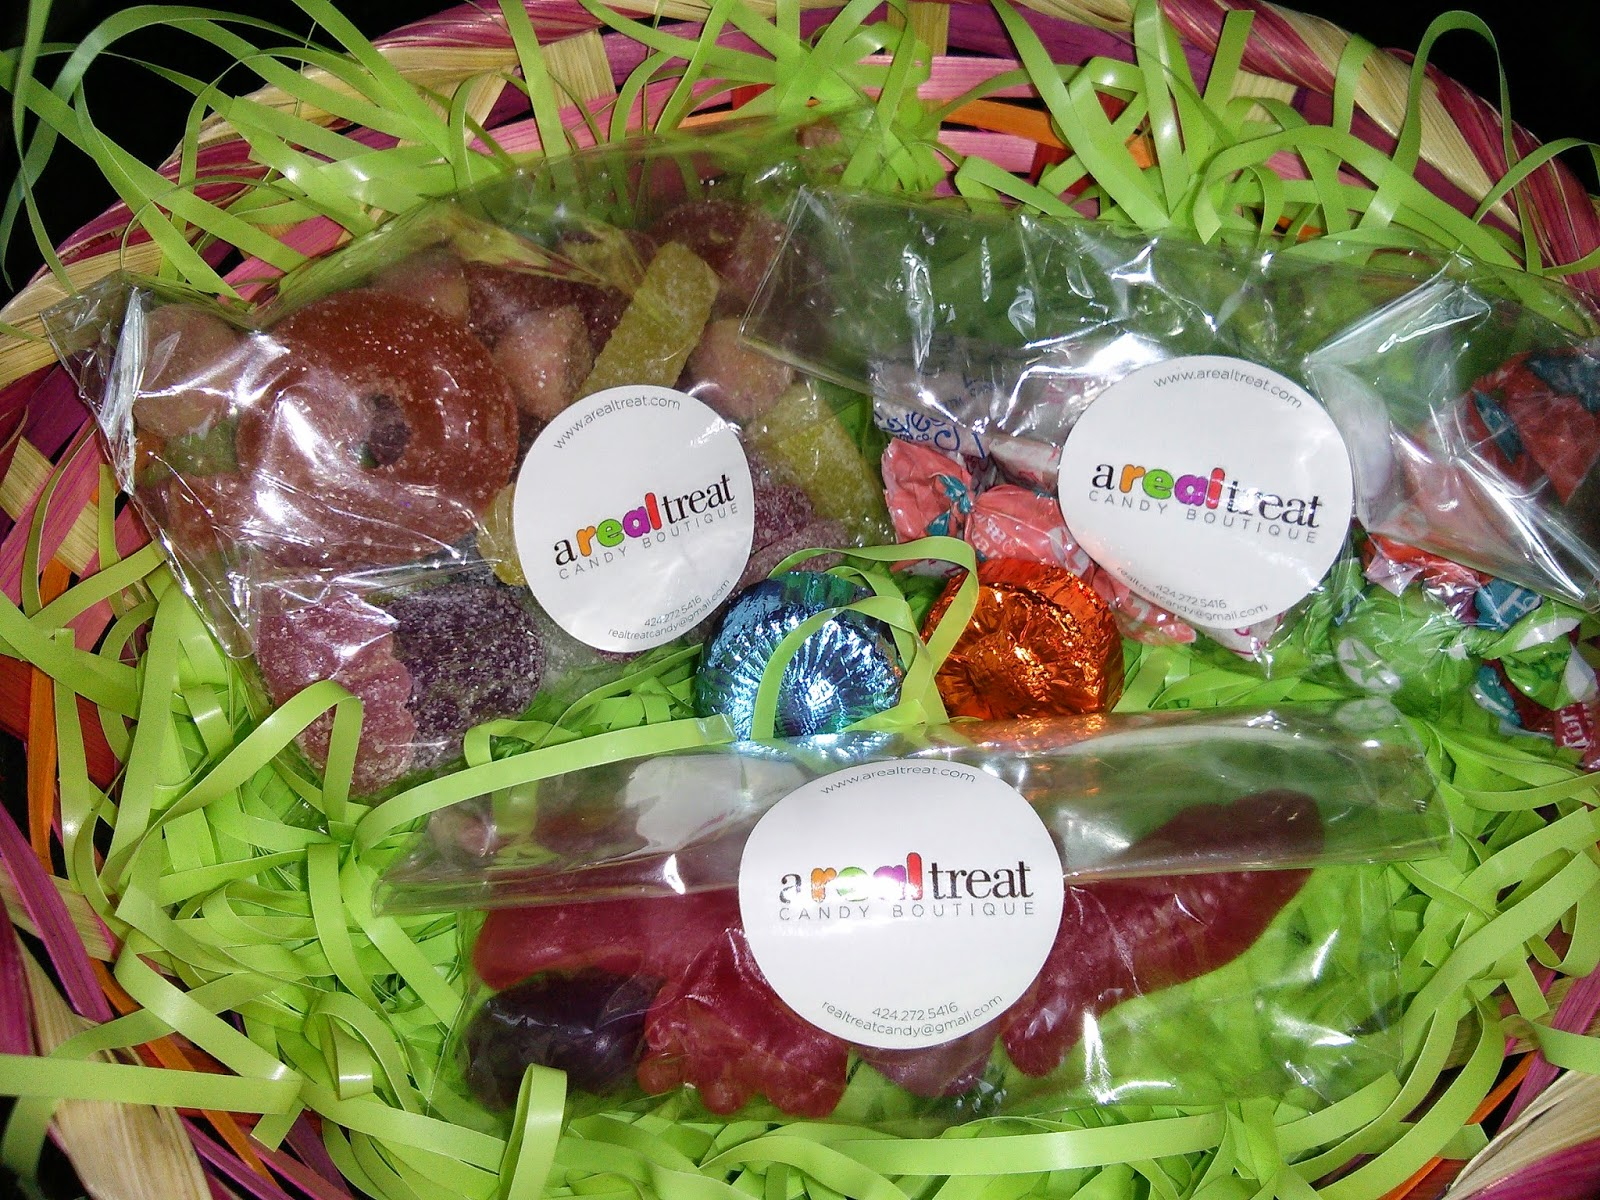 The dirty vegan the vegan easter basket in the pictures you will notice a plethora of easter basket candy a real treat has everything from gummies galore to vegan starburst type candies which negle Gallery